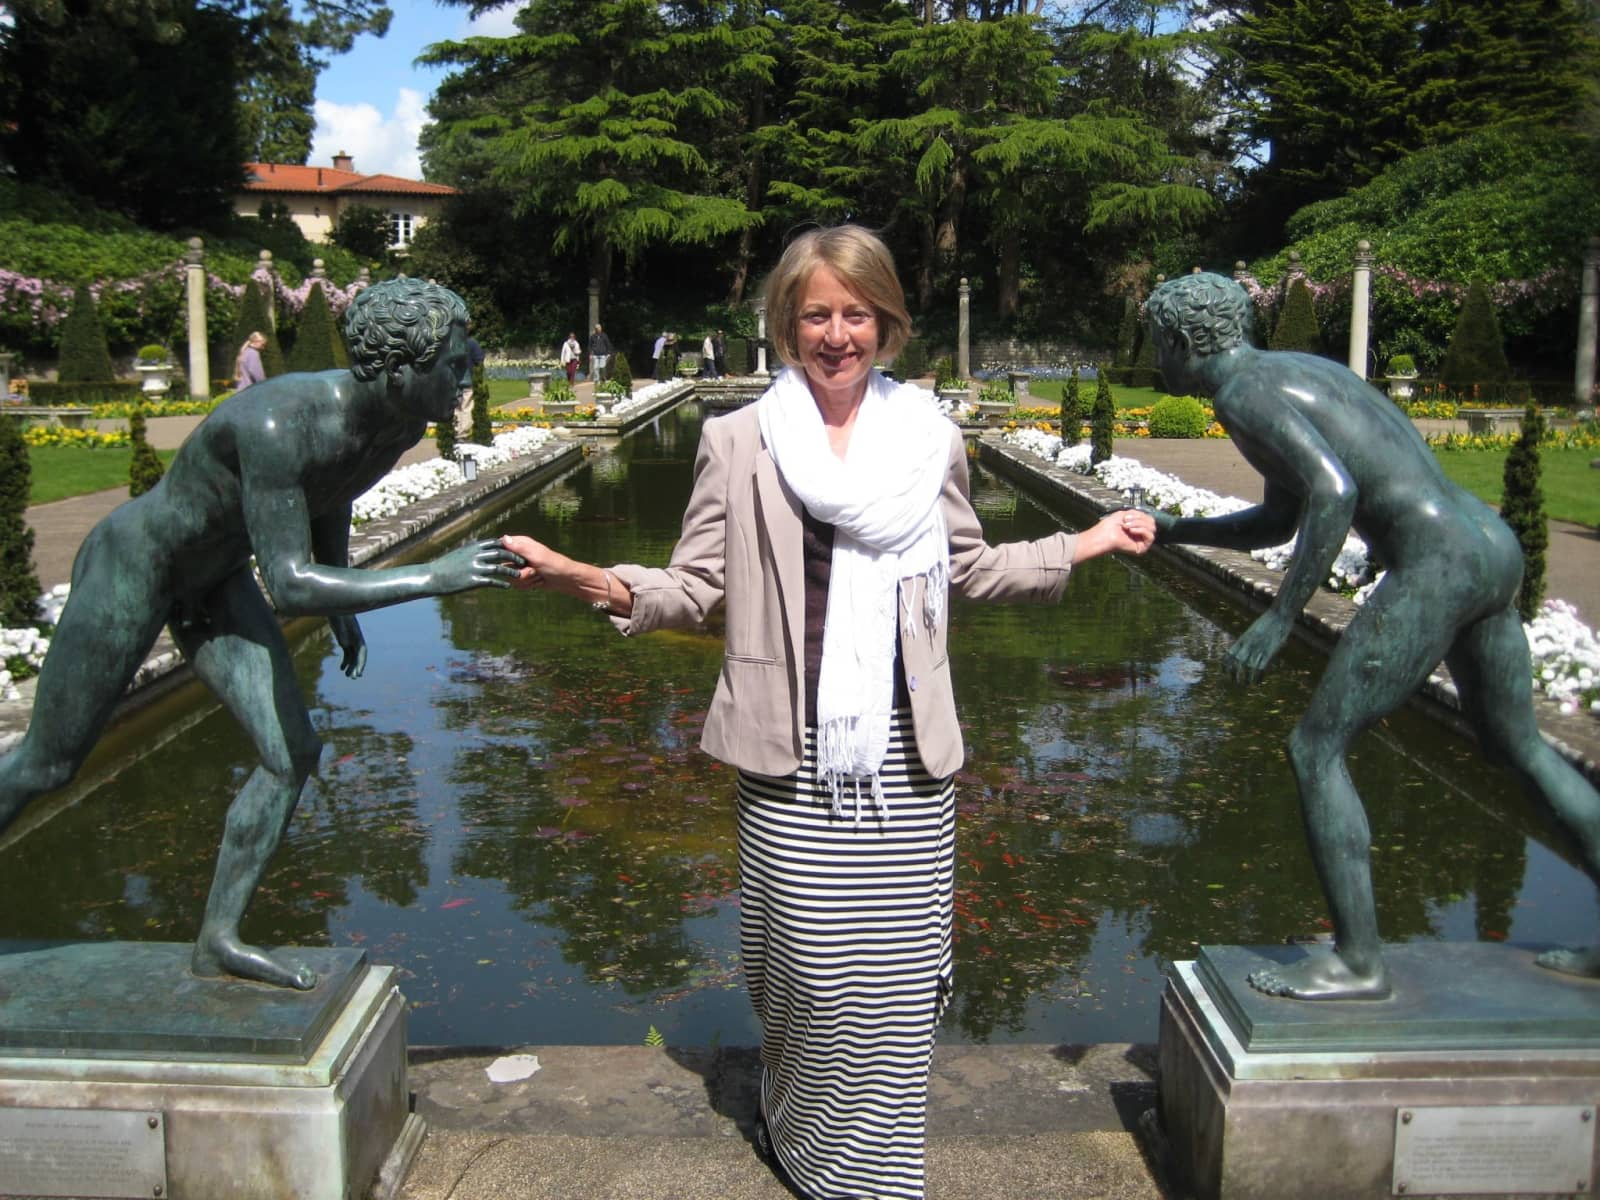 Susan from Bournemouth, United Kingdom